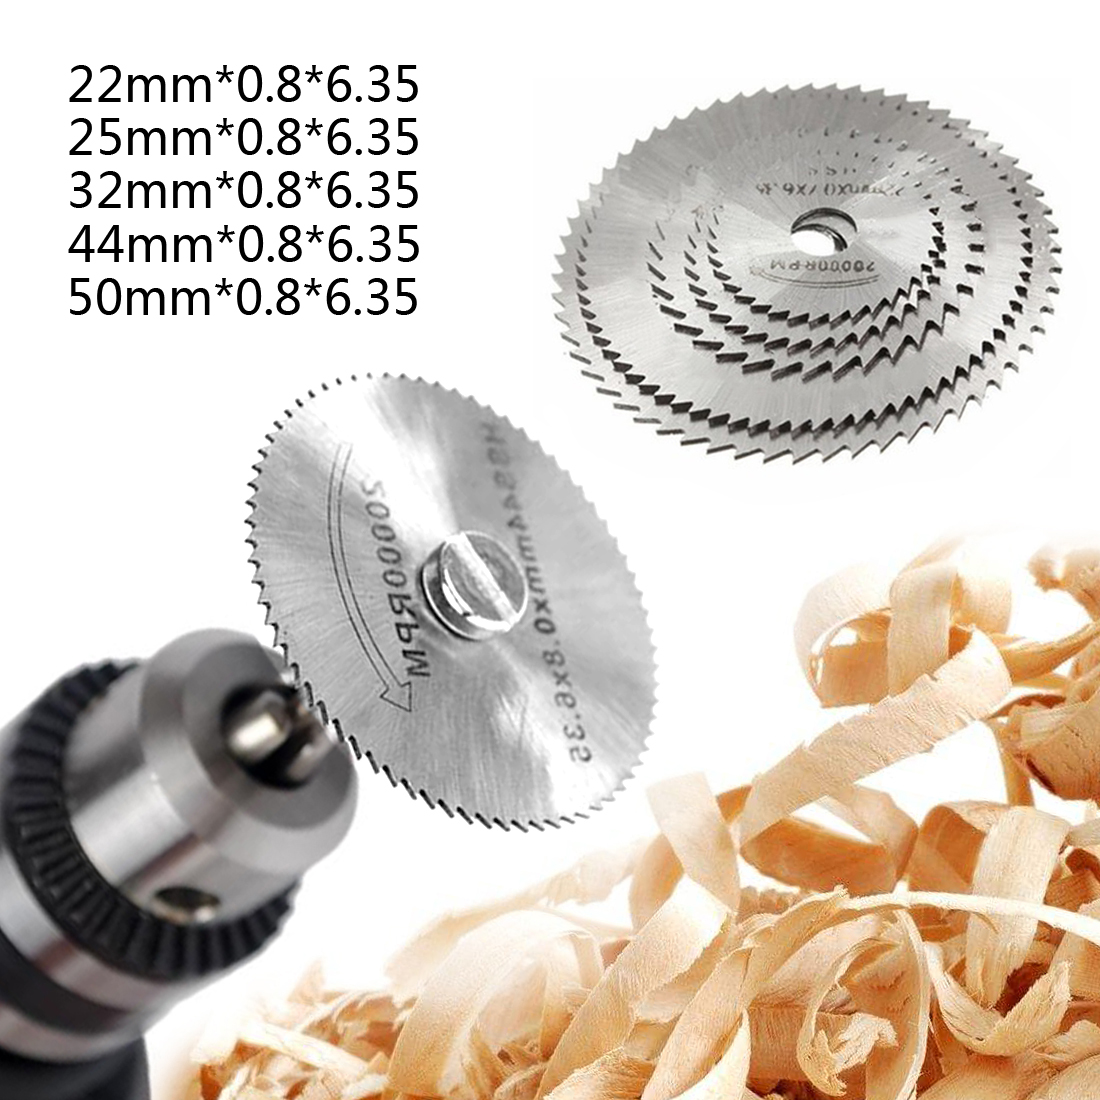 22-50mm Mini HSS Circular <font><b>Saw</b></font> <font><b>Blade</b></font> <font><b>Jig</b></font> <font><b>Saw</b></font> Rotary Tool For Dremel <font><b>Metal</b></font> Cutter Power Tool Set Wood Cutting Discs Drill Mandrel image